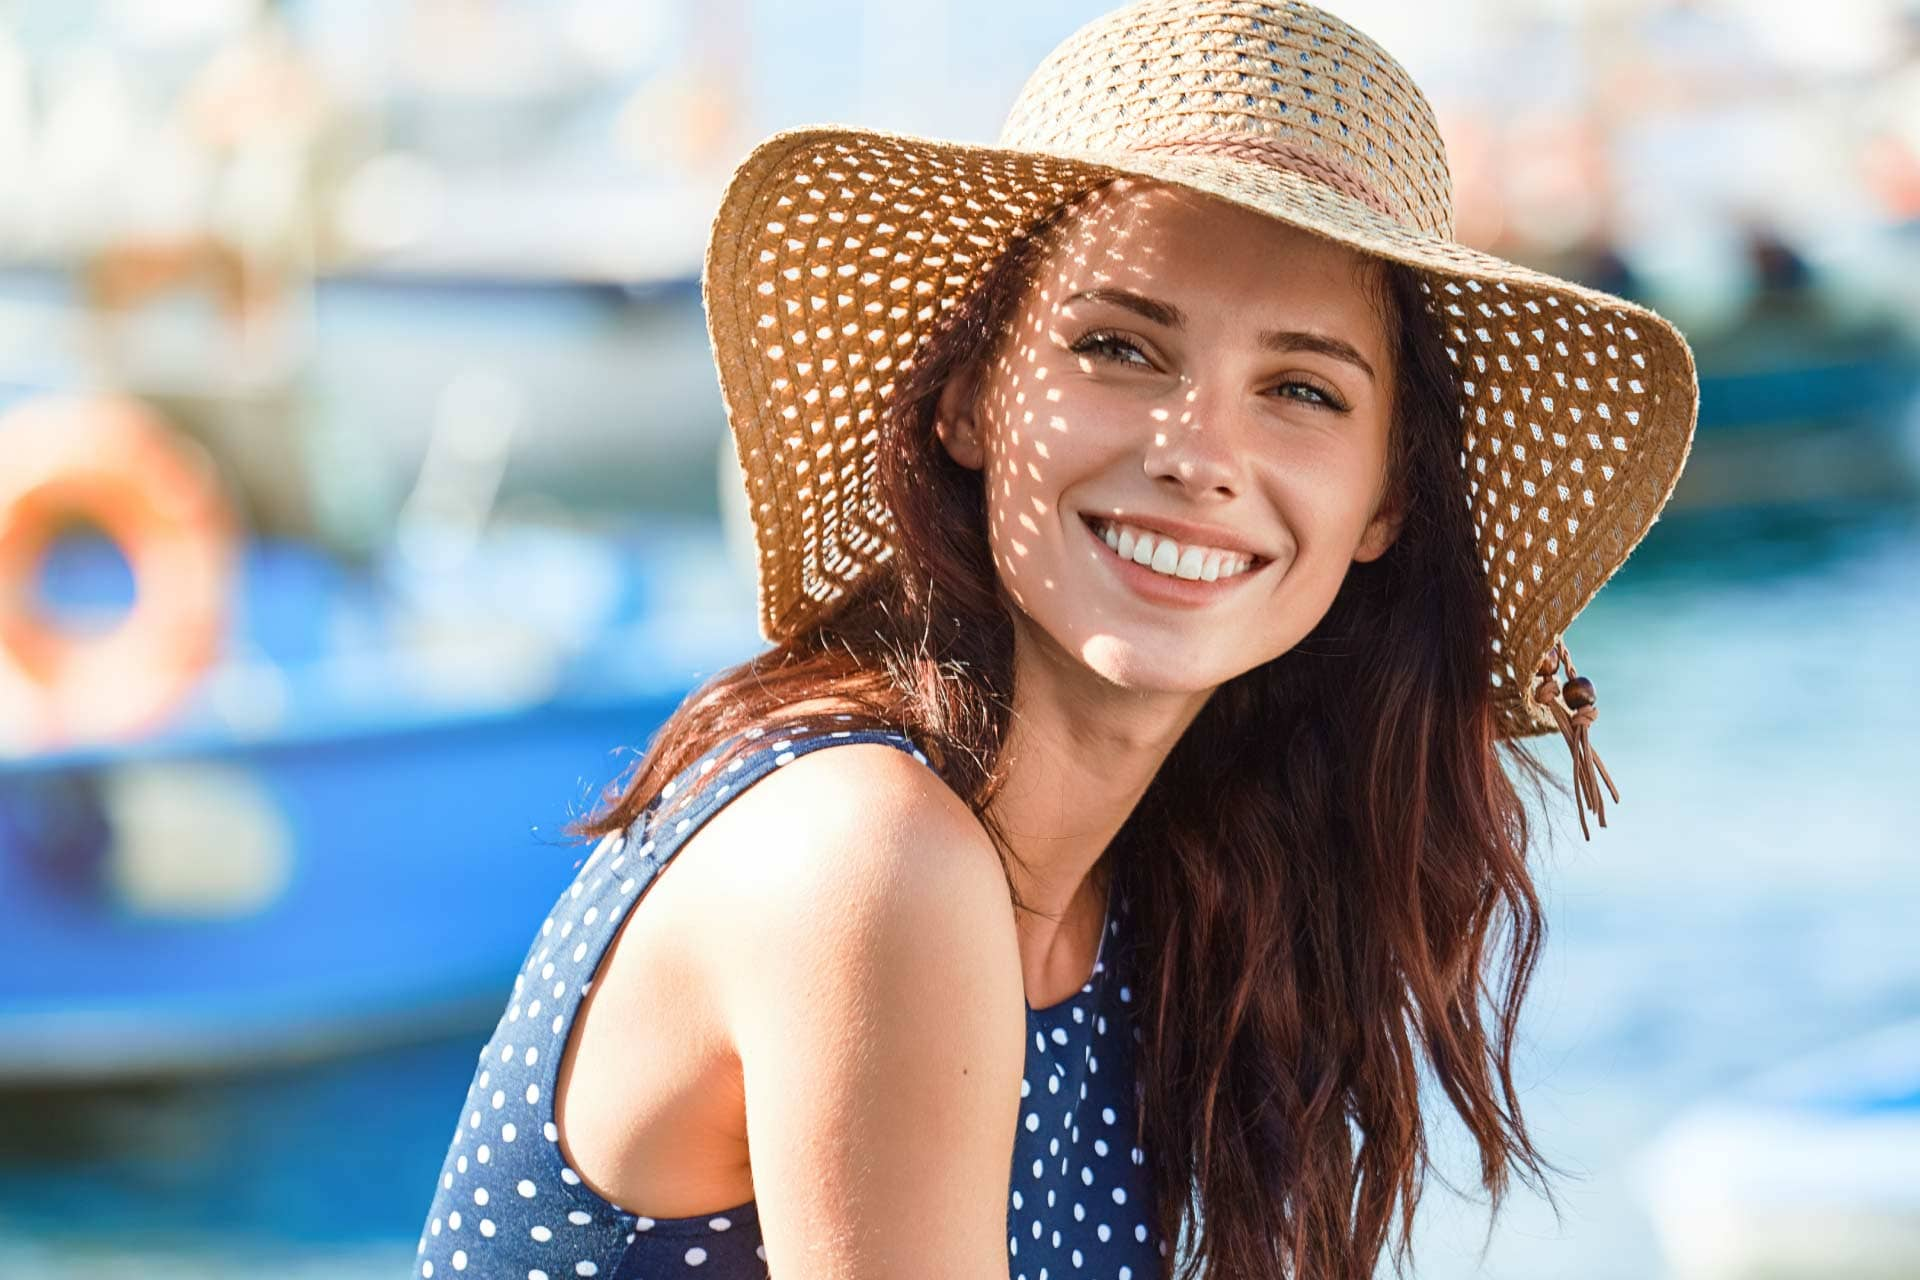 happy woman with great smile